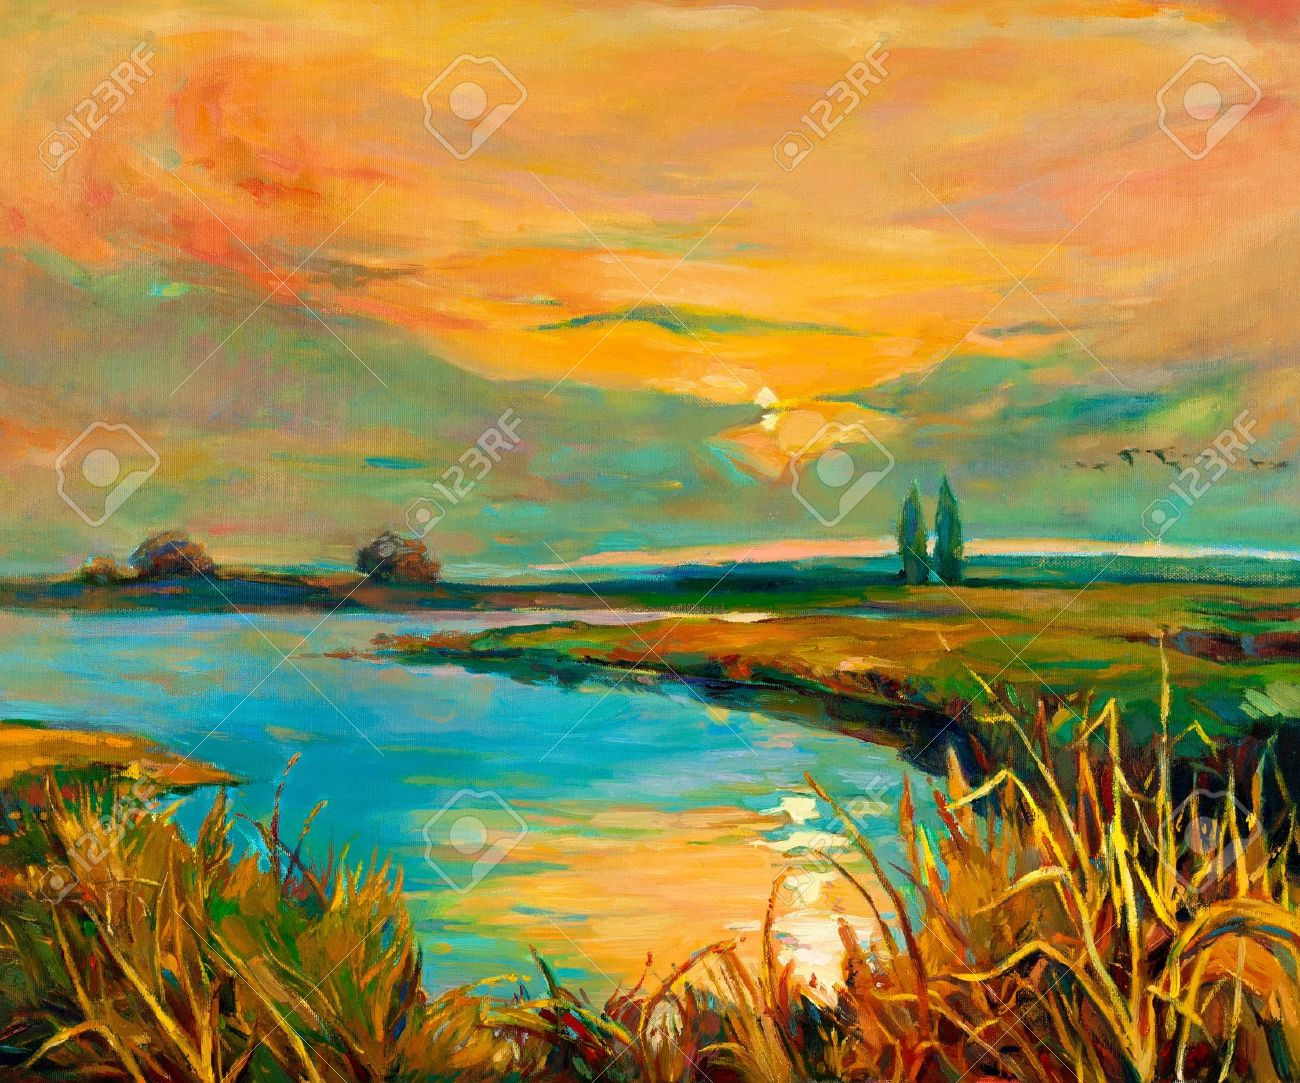 Oil Painting clipart #13, Download drawings